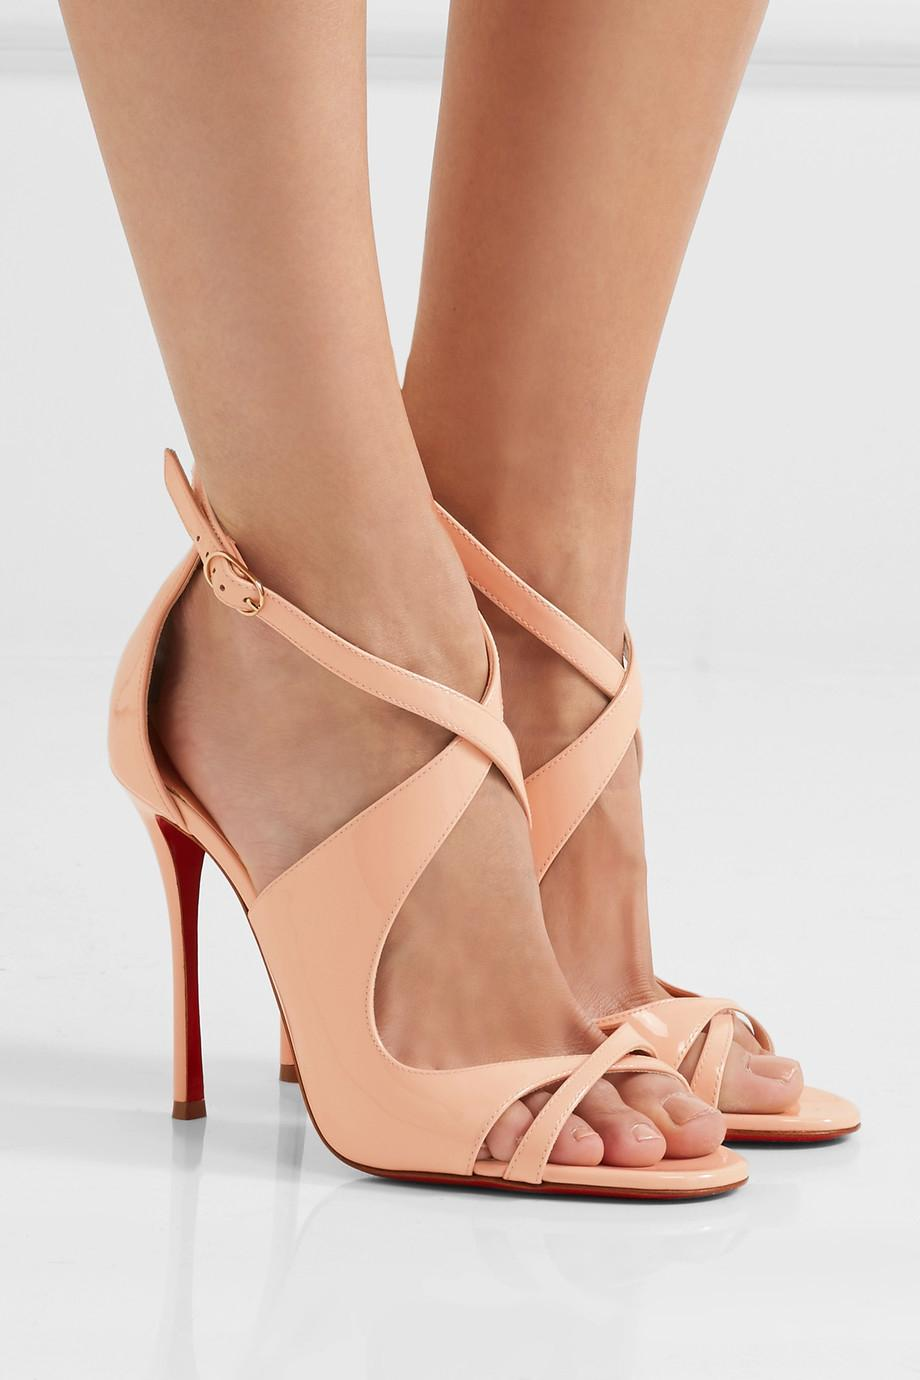 christian louboutin gold criss cross